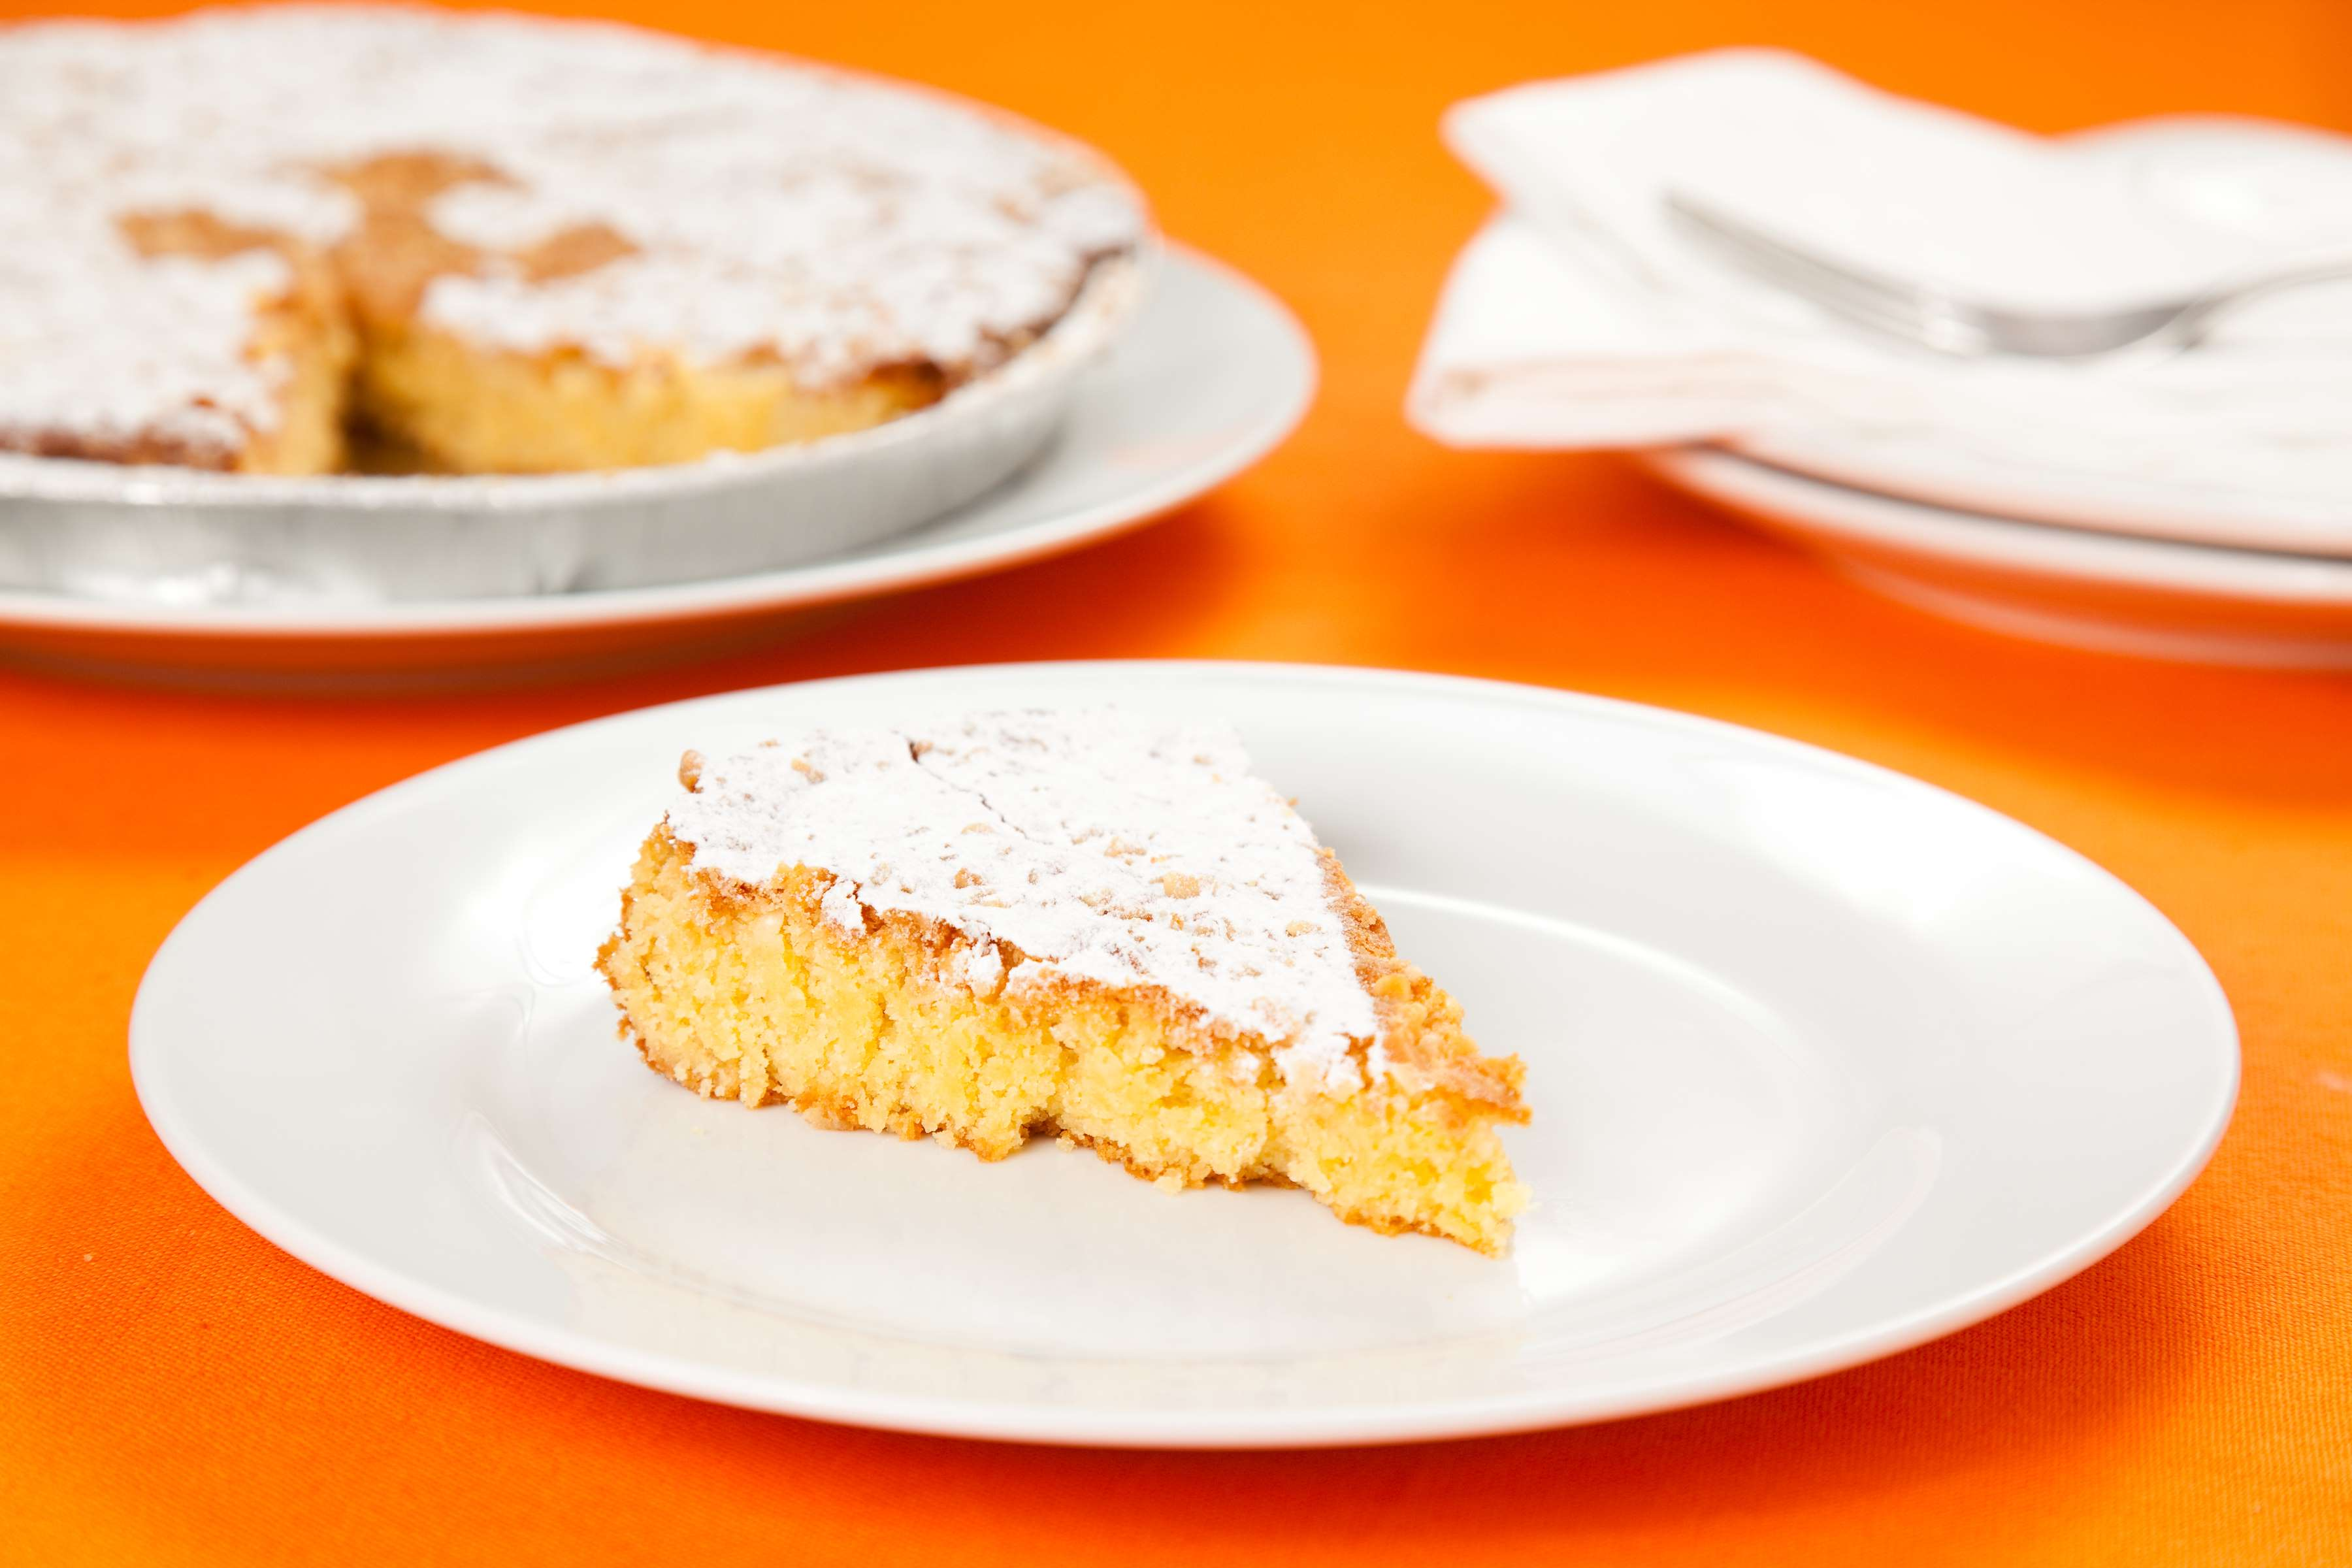 Spanish Almond Cake Recipe